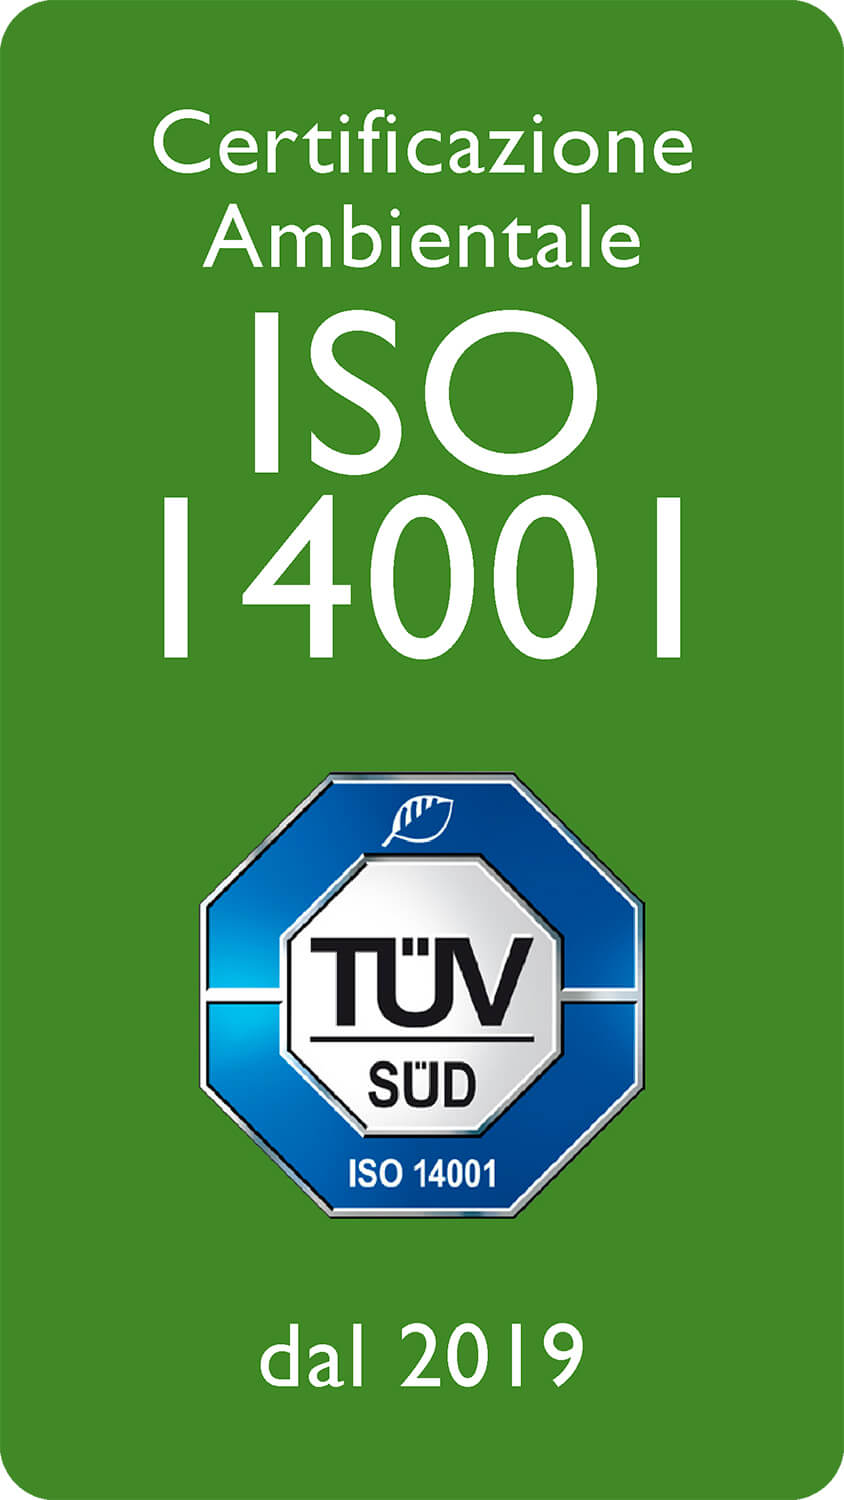 Certificazione Ambientale ISO I4001 dal 2019